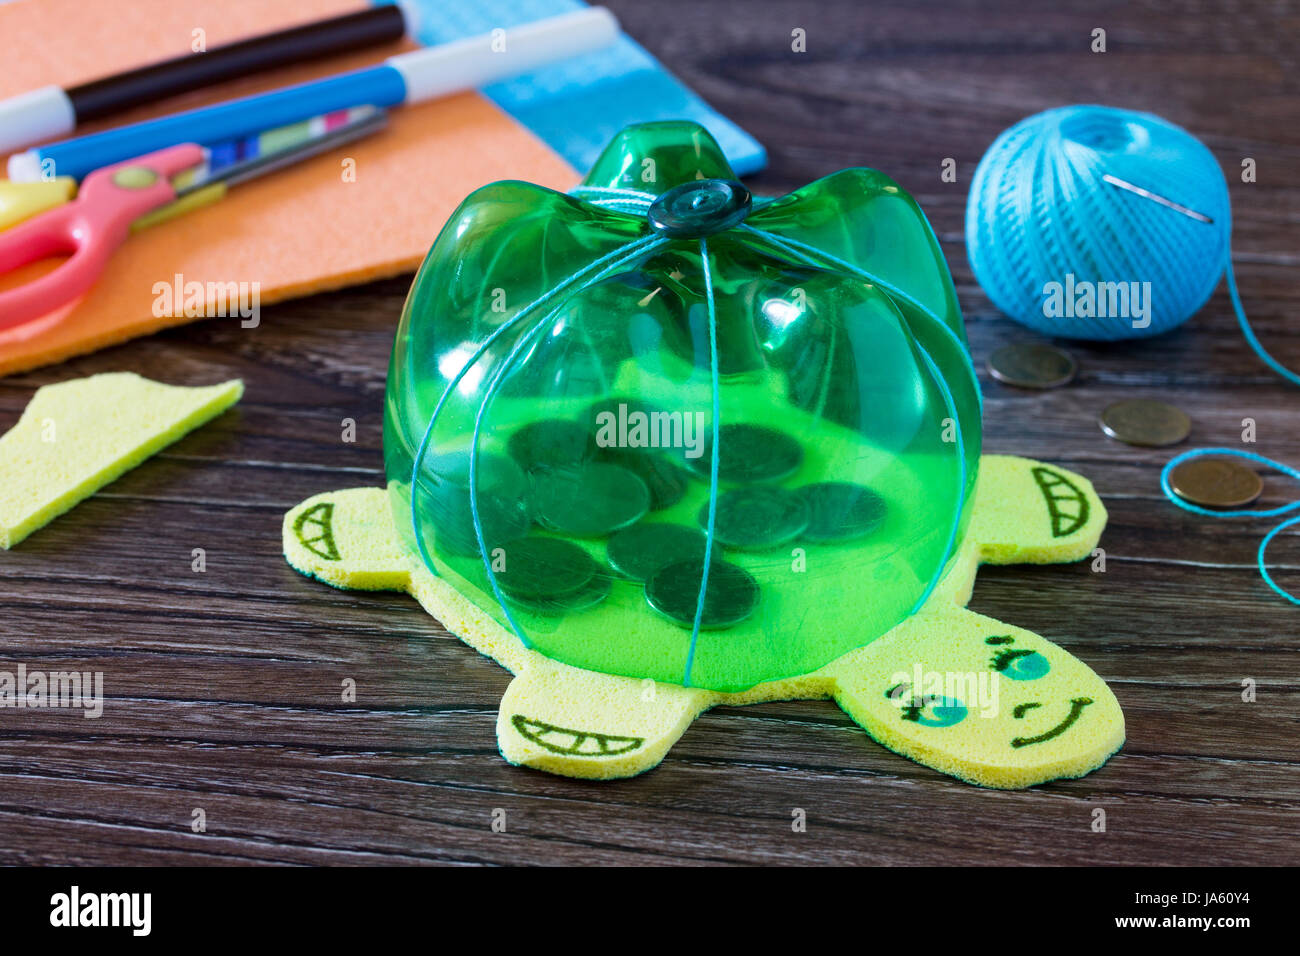 Children S Hand Made Article From A Plastic Bottle Piggy Bank For